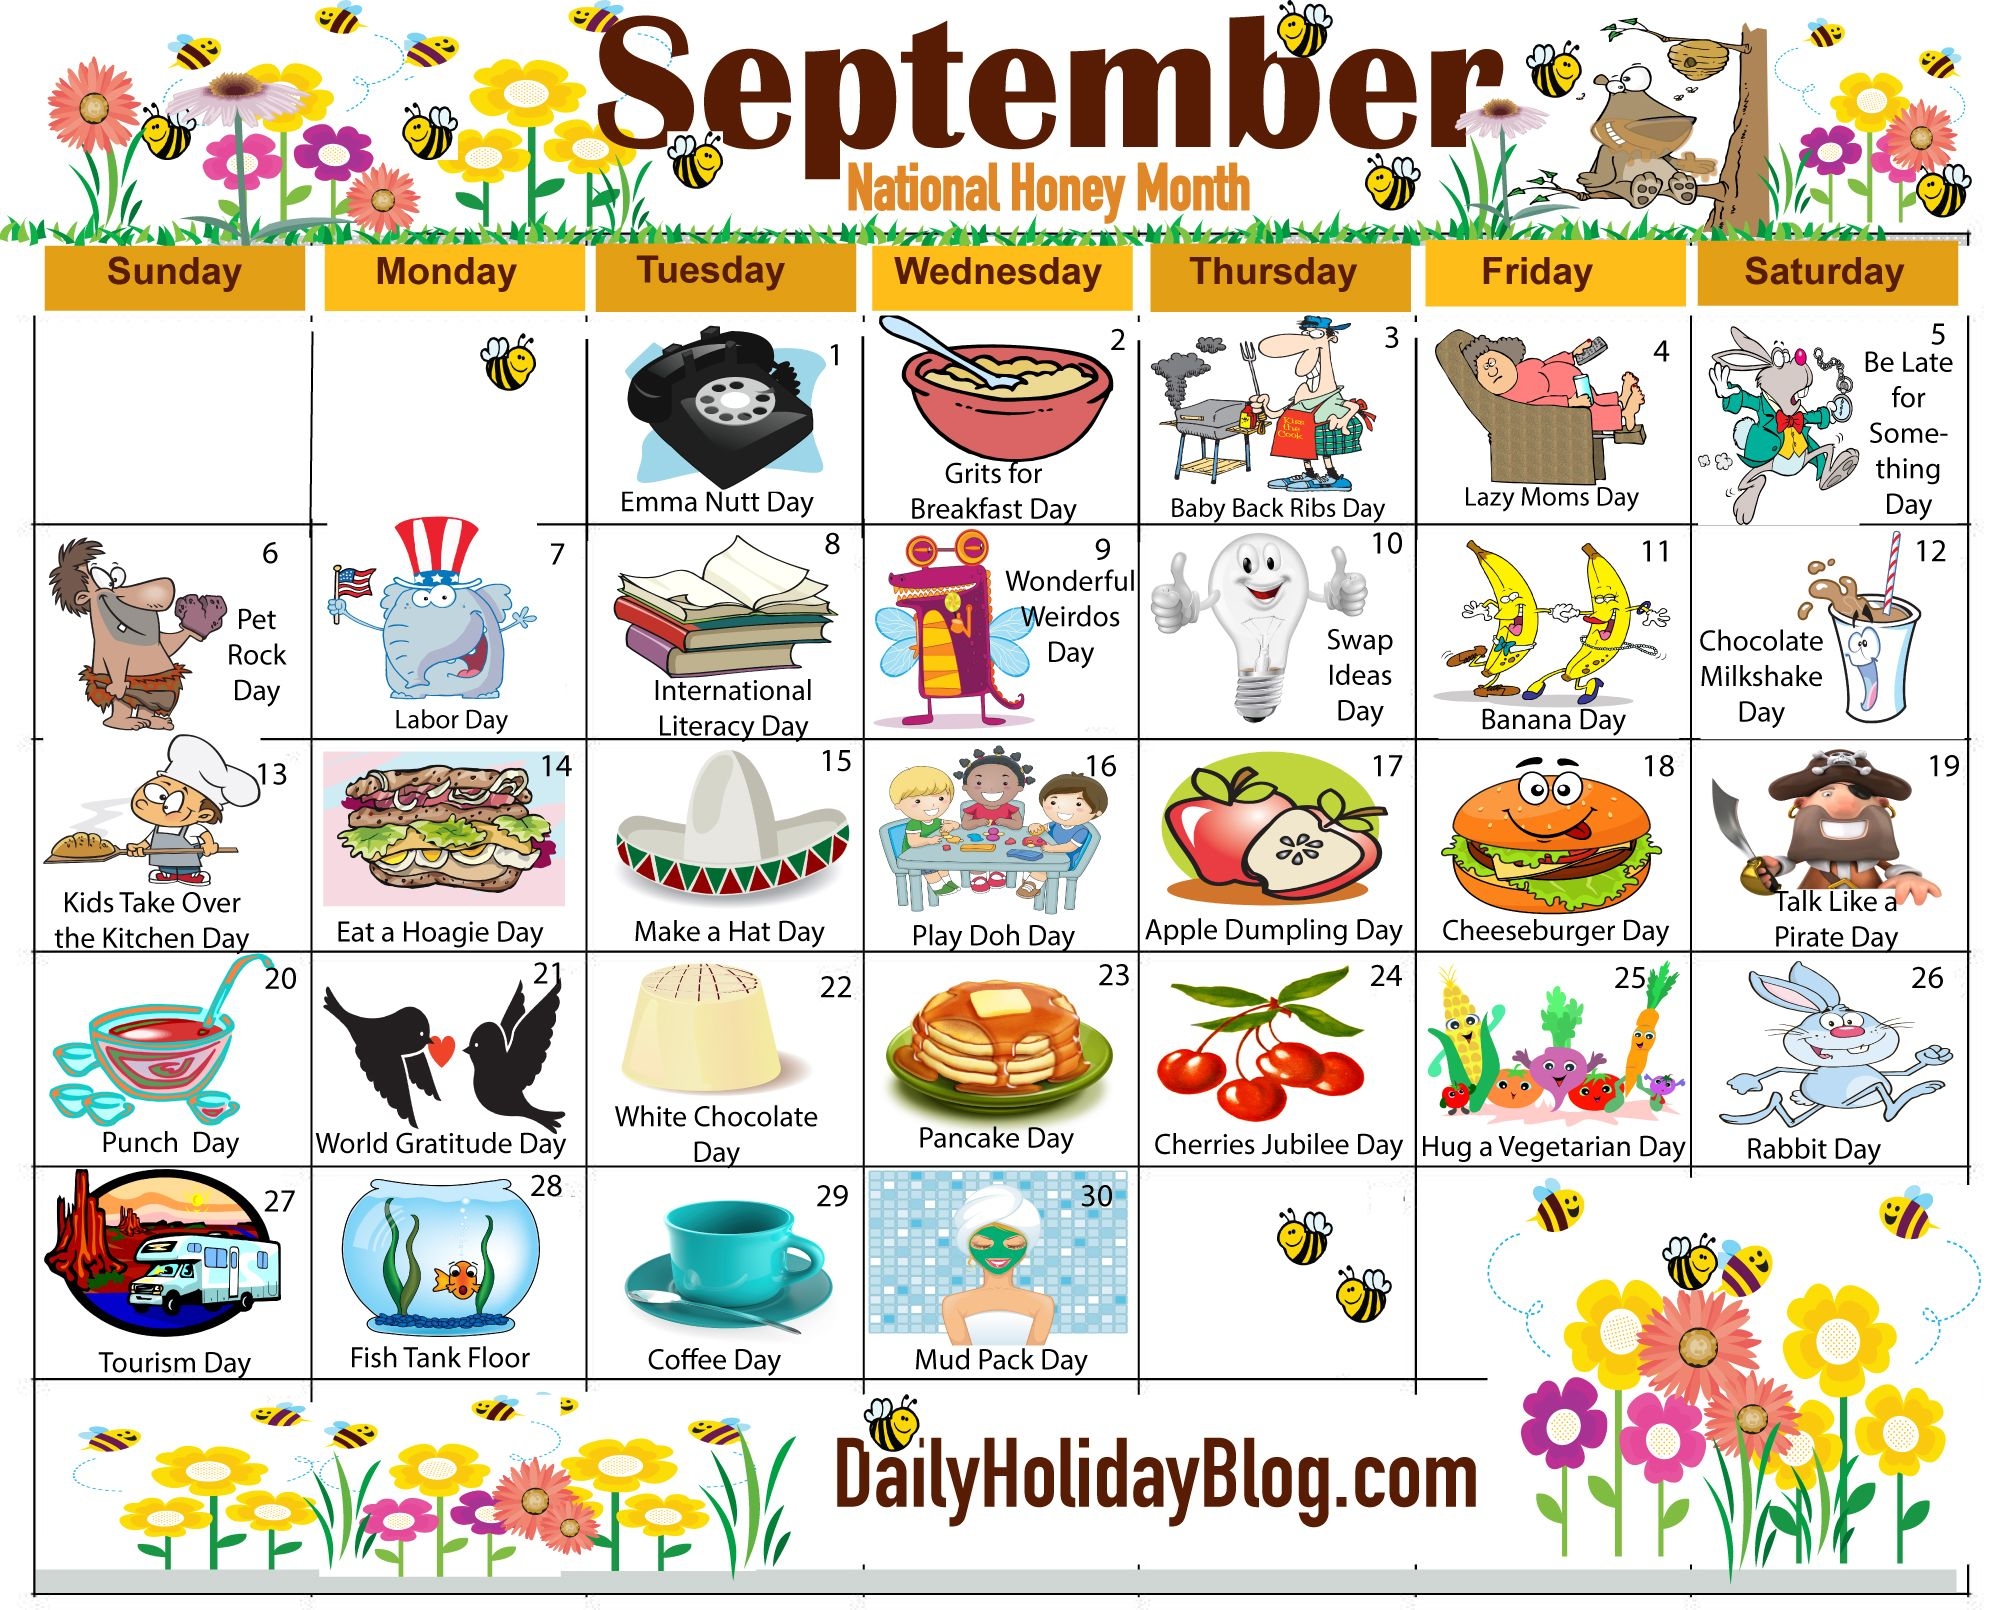 Monthly Calendar Ideas : Unique print free calendar ideas on pinterest